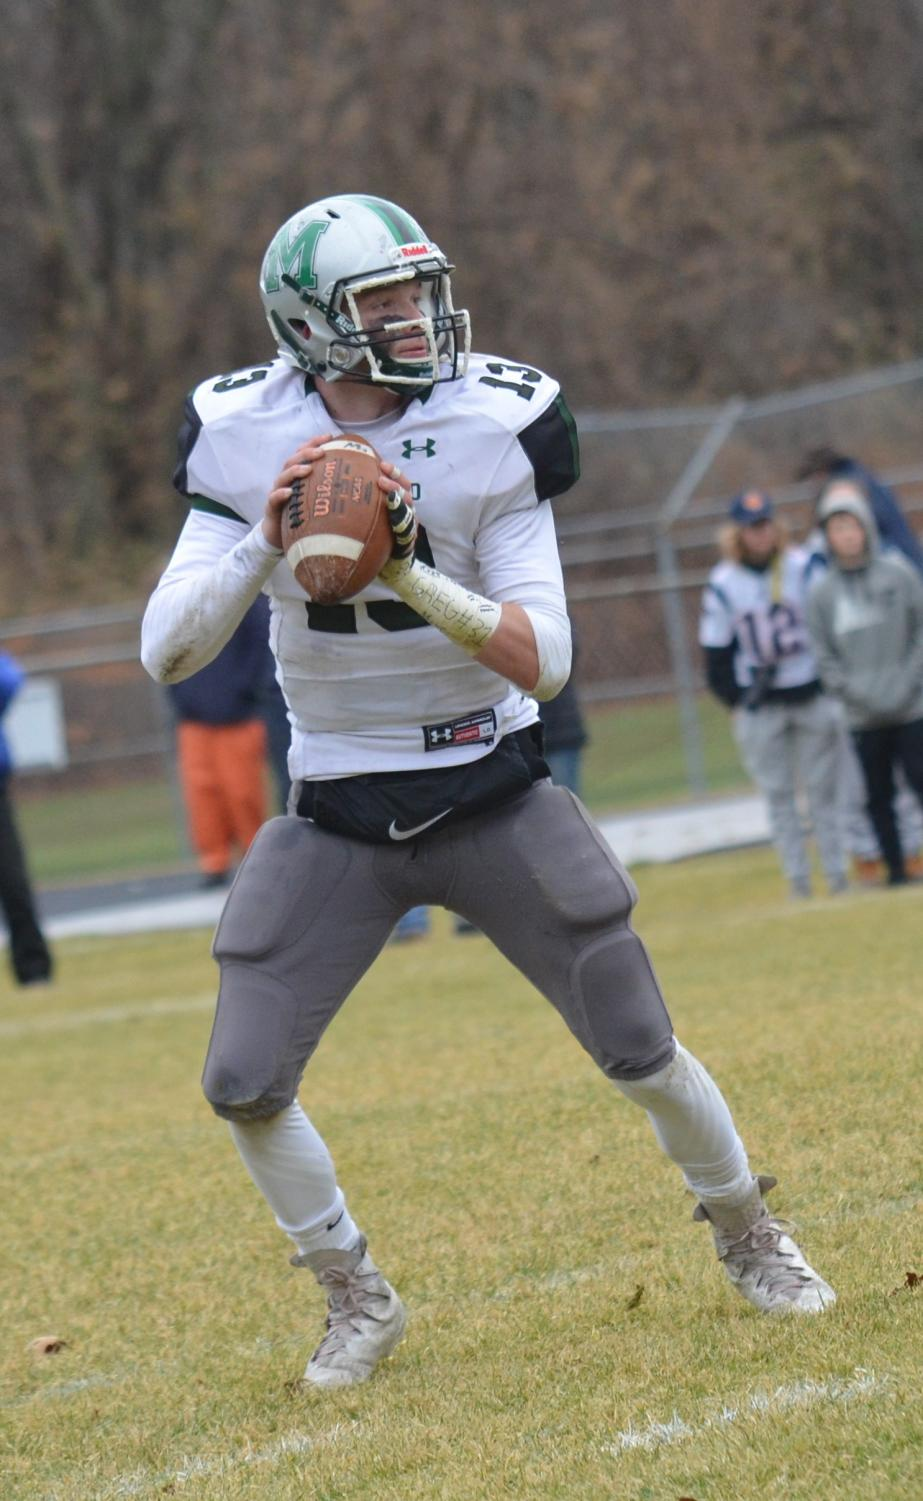 Jack Moussette surveys the field looking for an open receiver in a Thanksgiving Day win against Foxborough